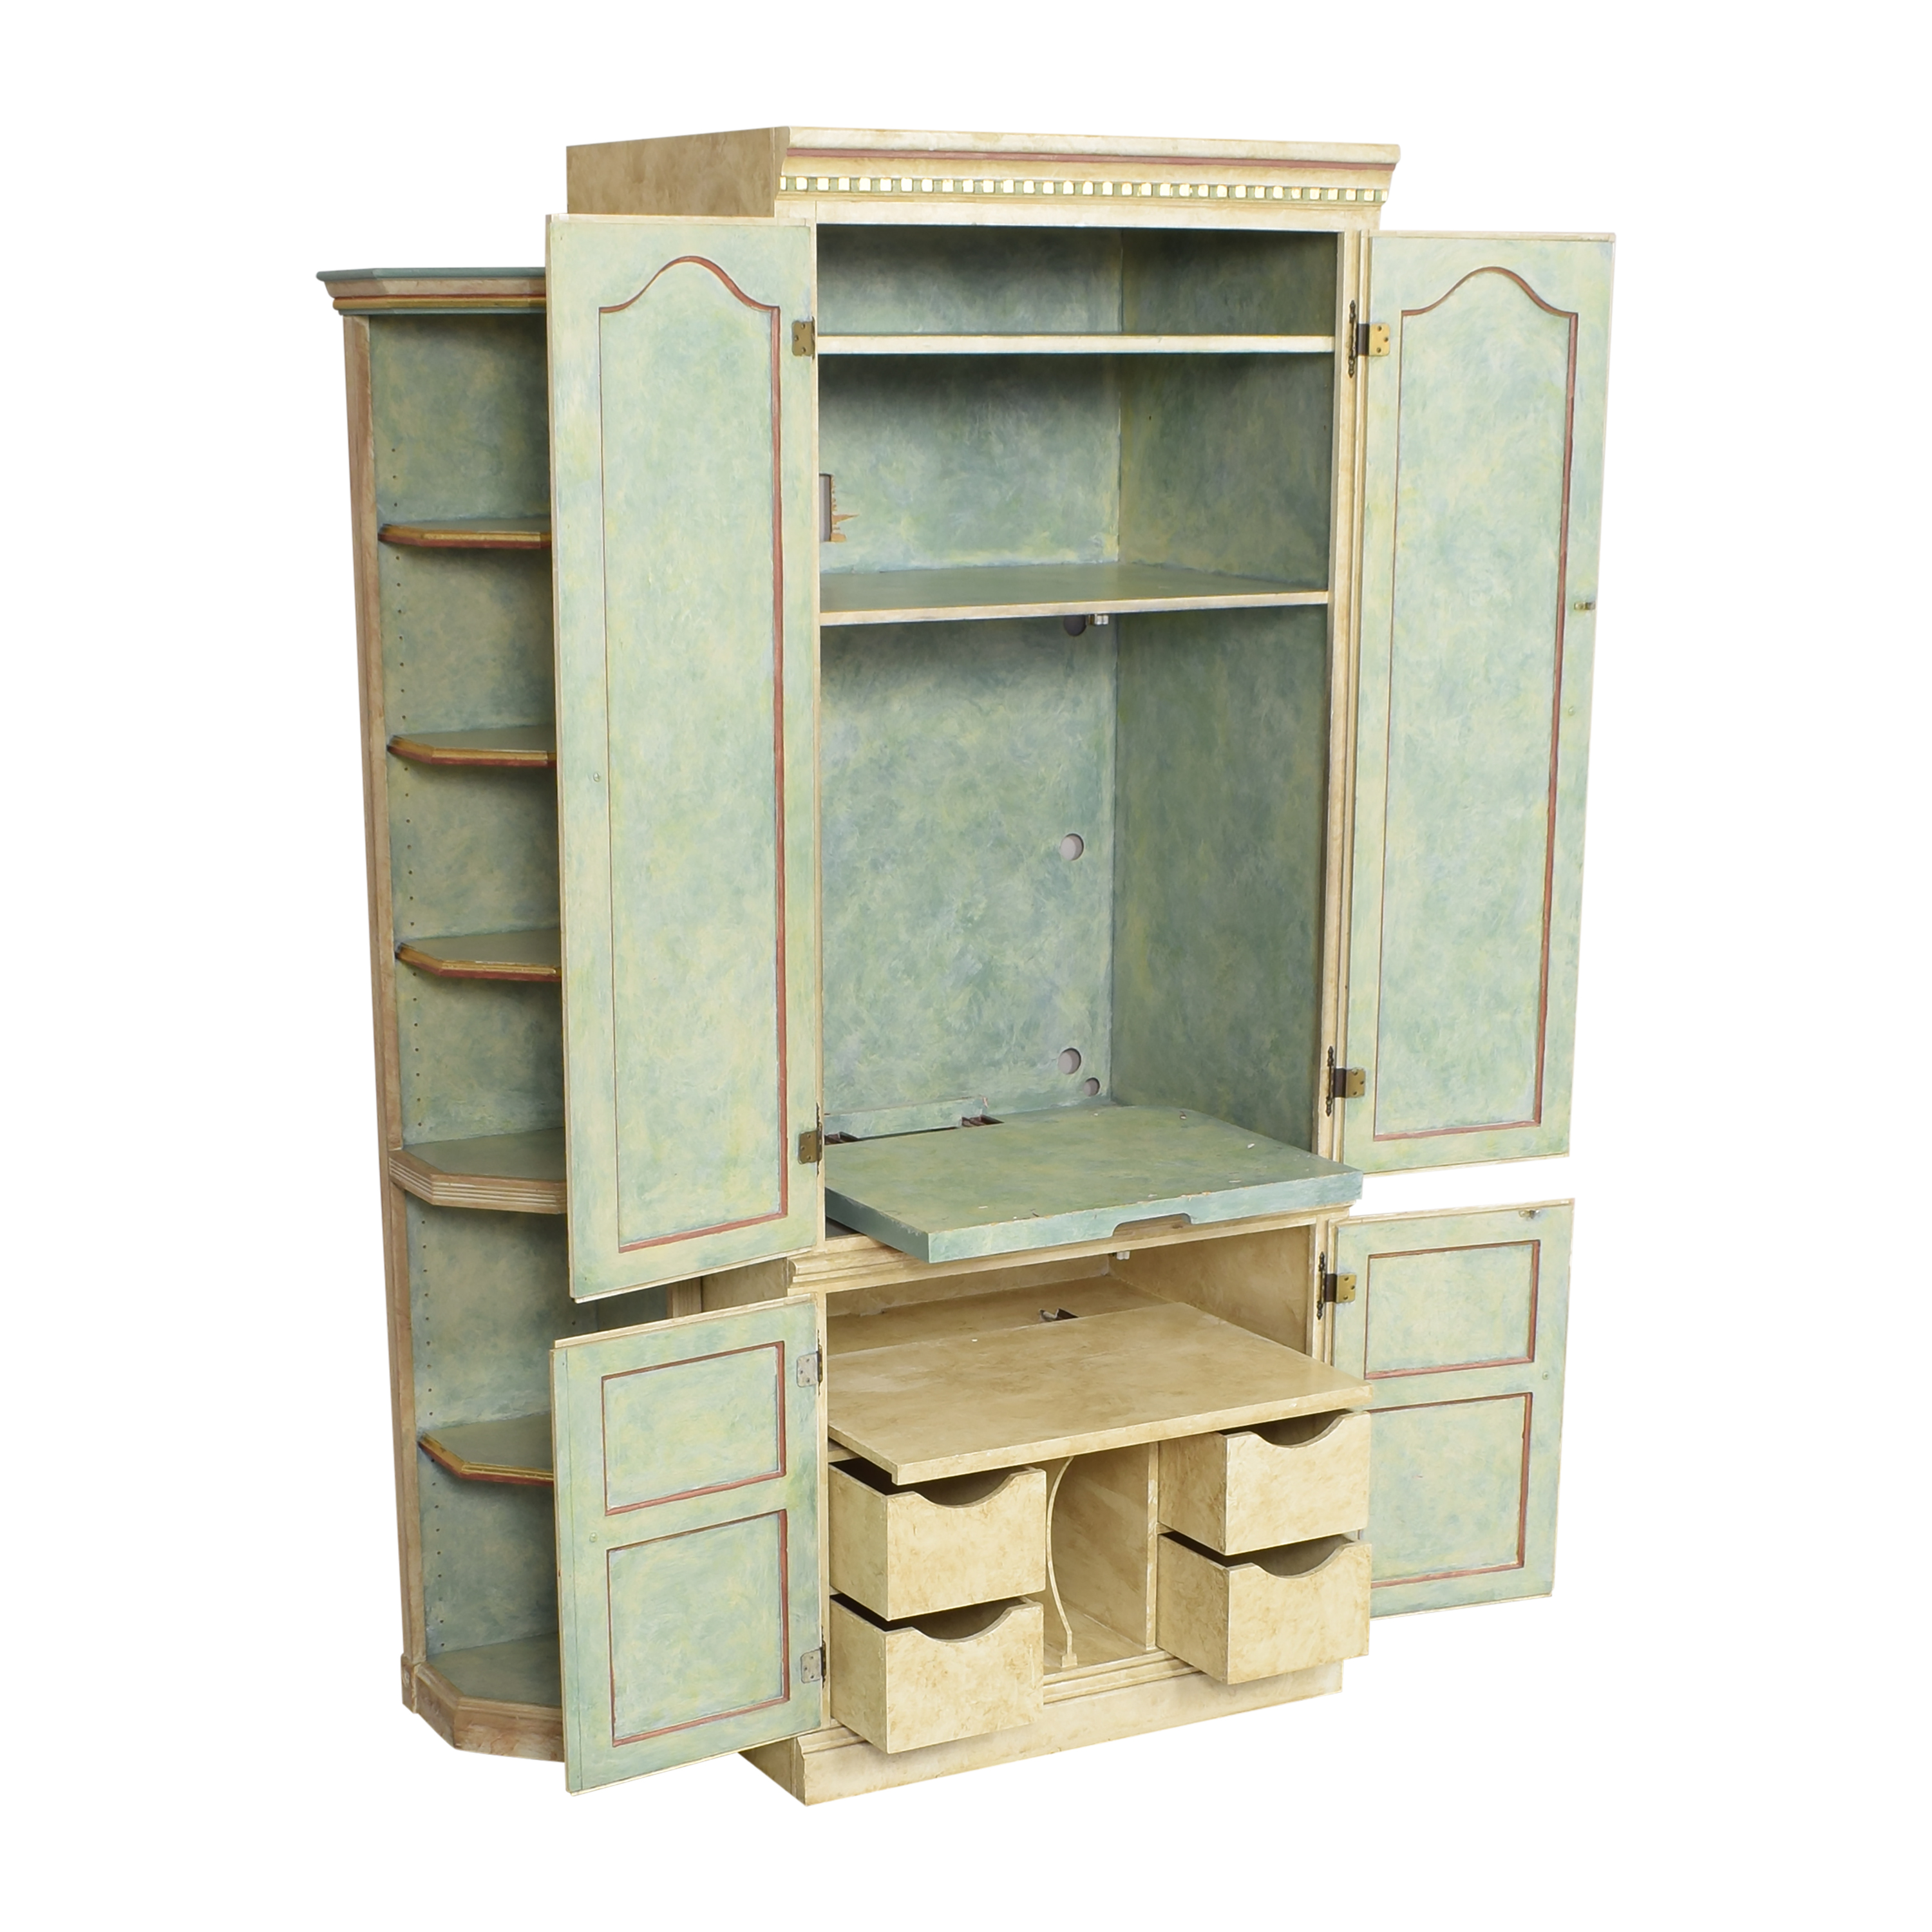 Floral Armoire with Shelves / Storage